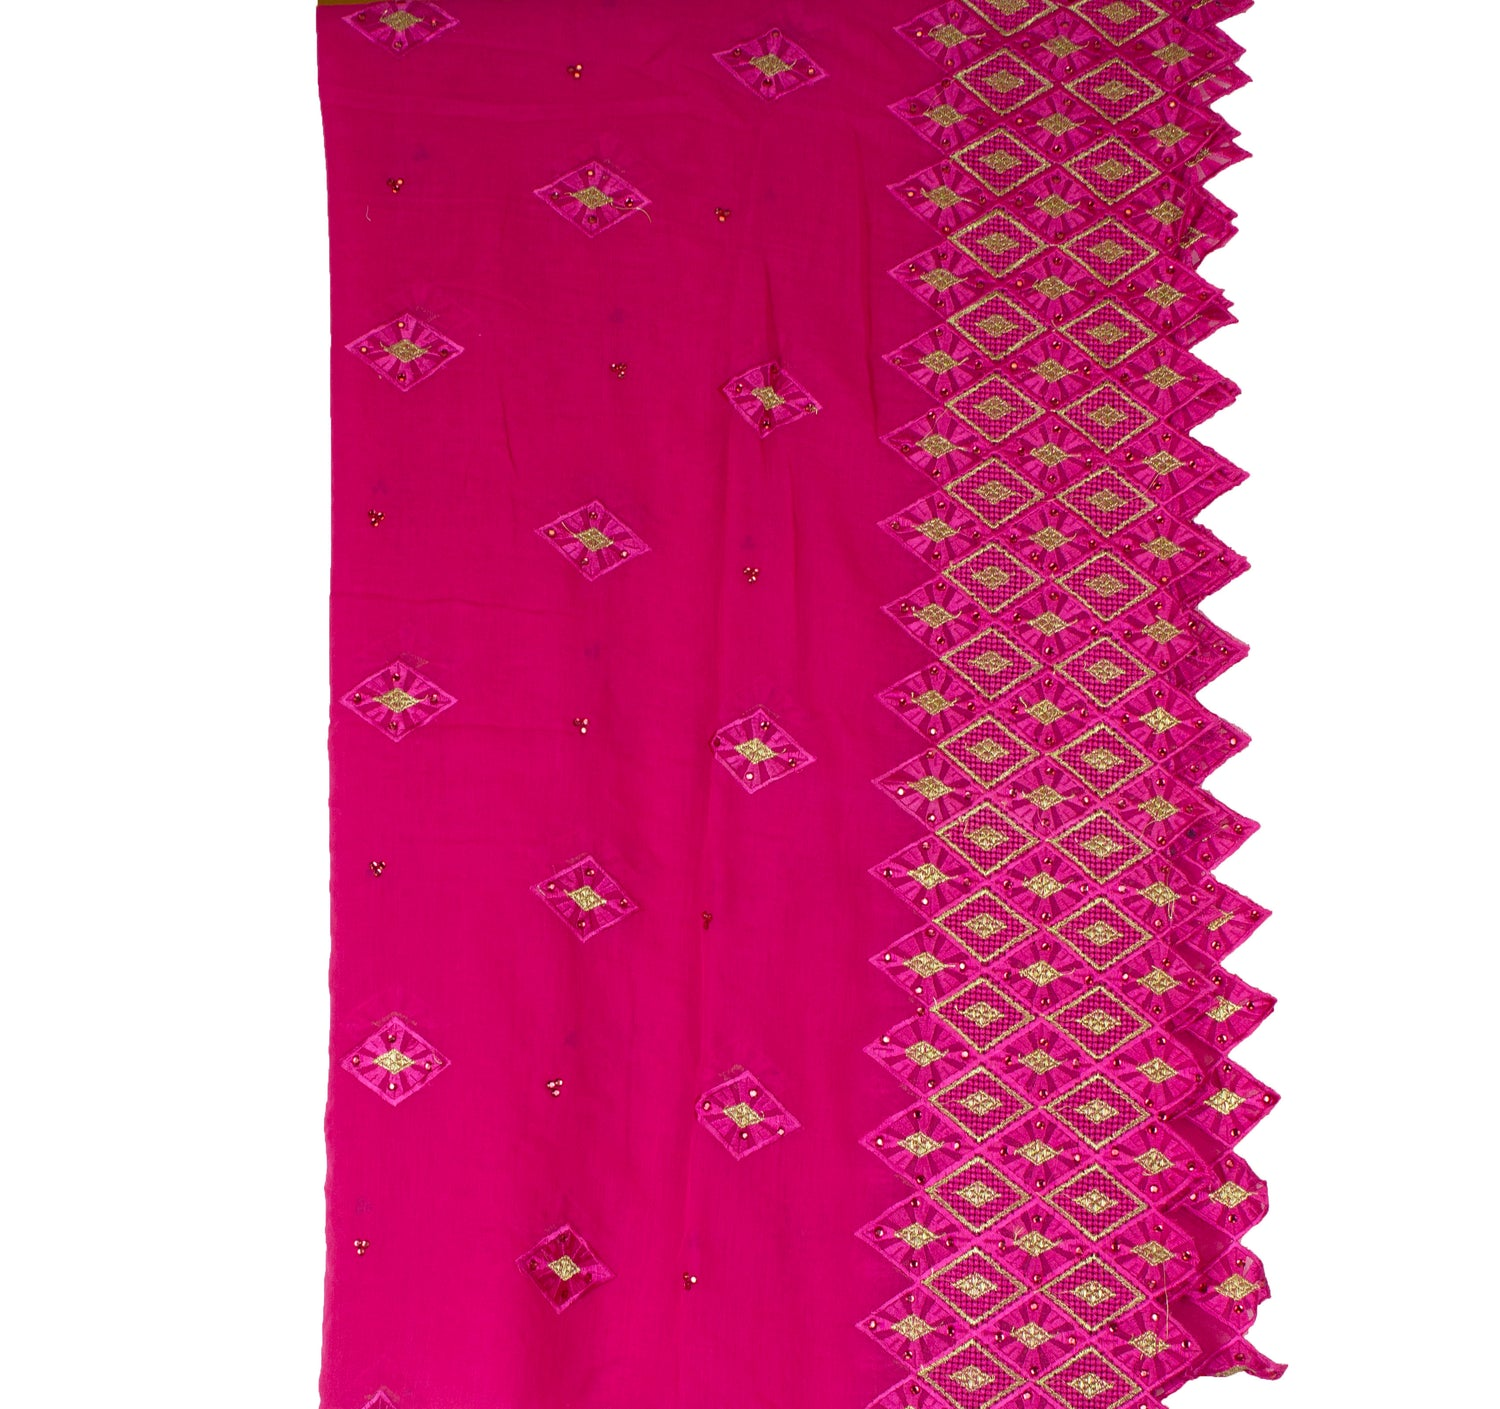 Mayafi Shawl Wrap - Hot Pink